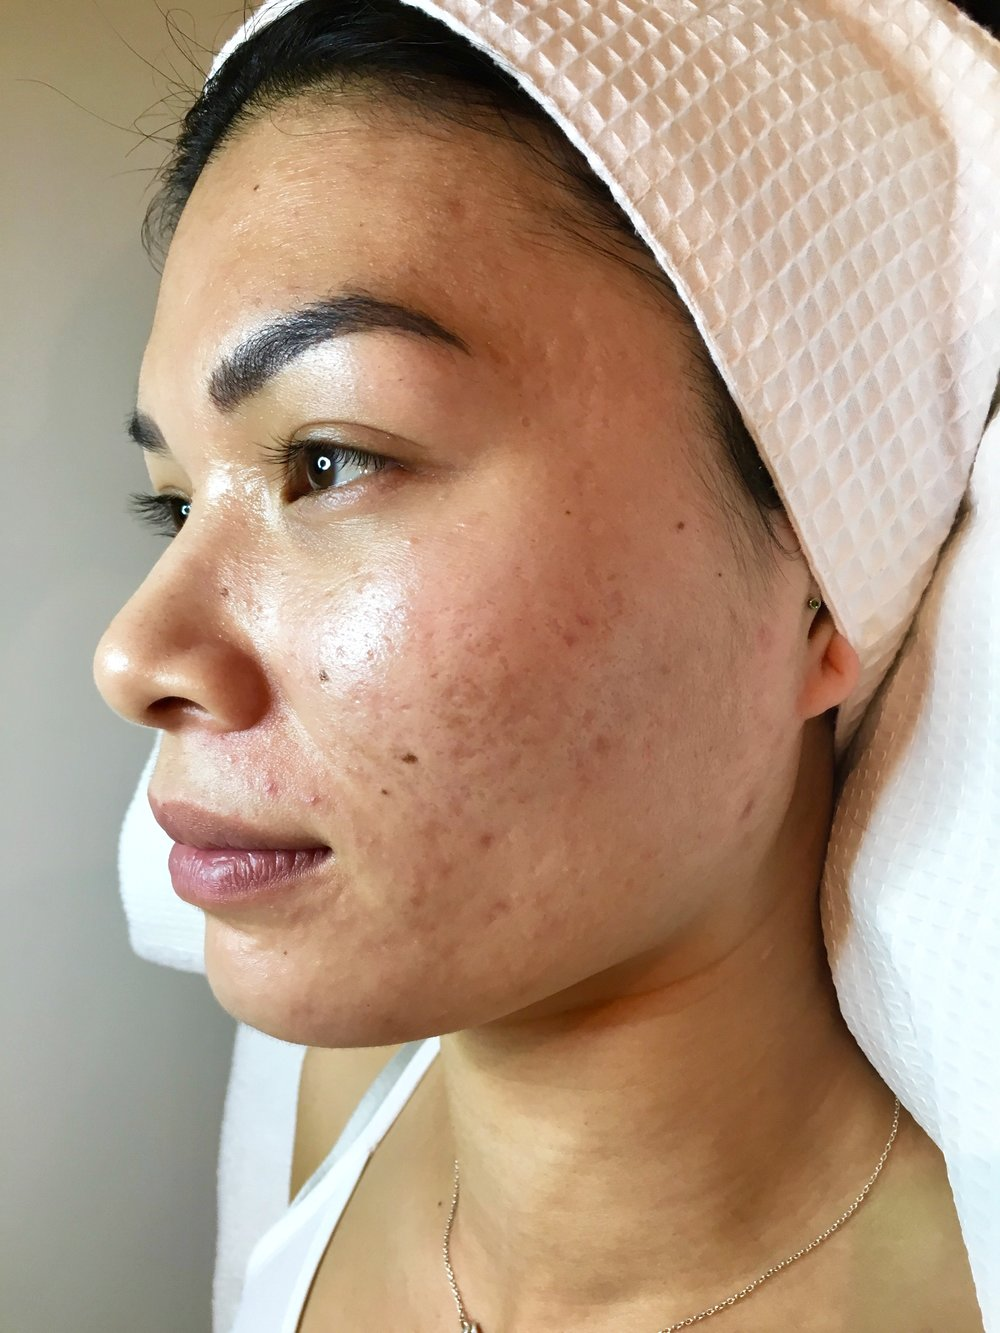 dermaviduals melbourne dmk enzyme therapy melbourne dmk enzyme treatment melbourne acne scaring. skin needling. skin clinic melbourne.